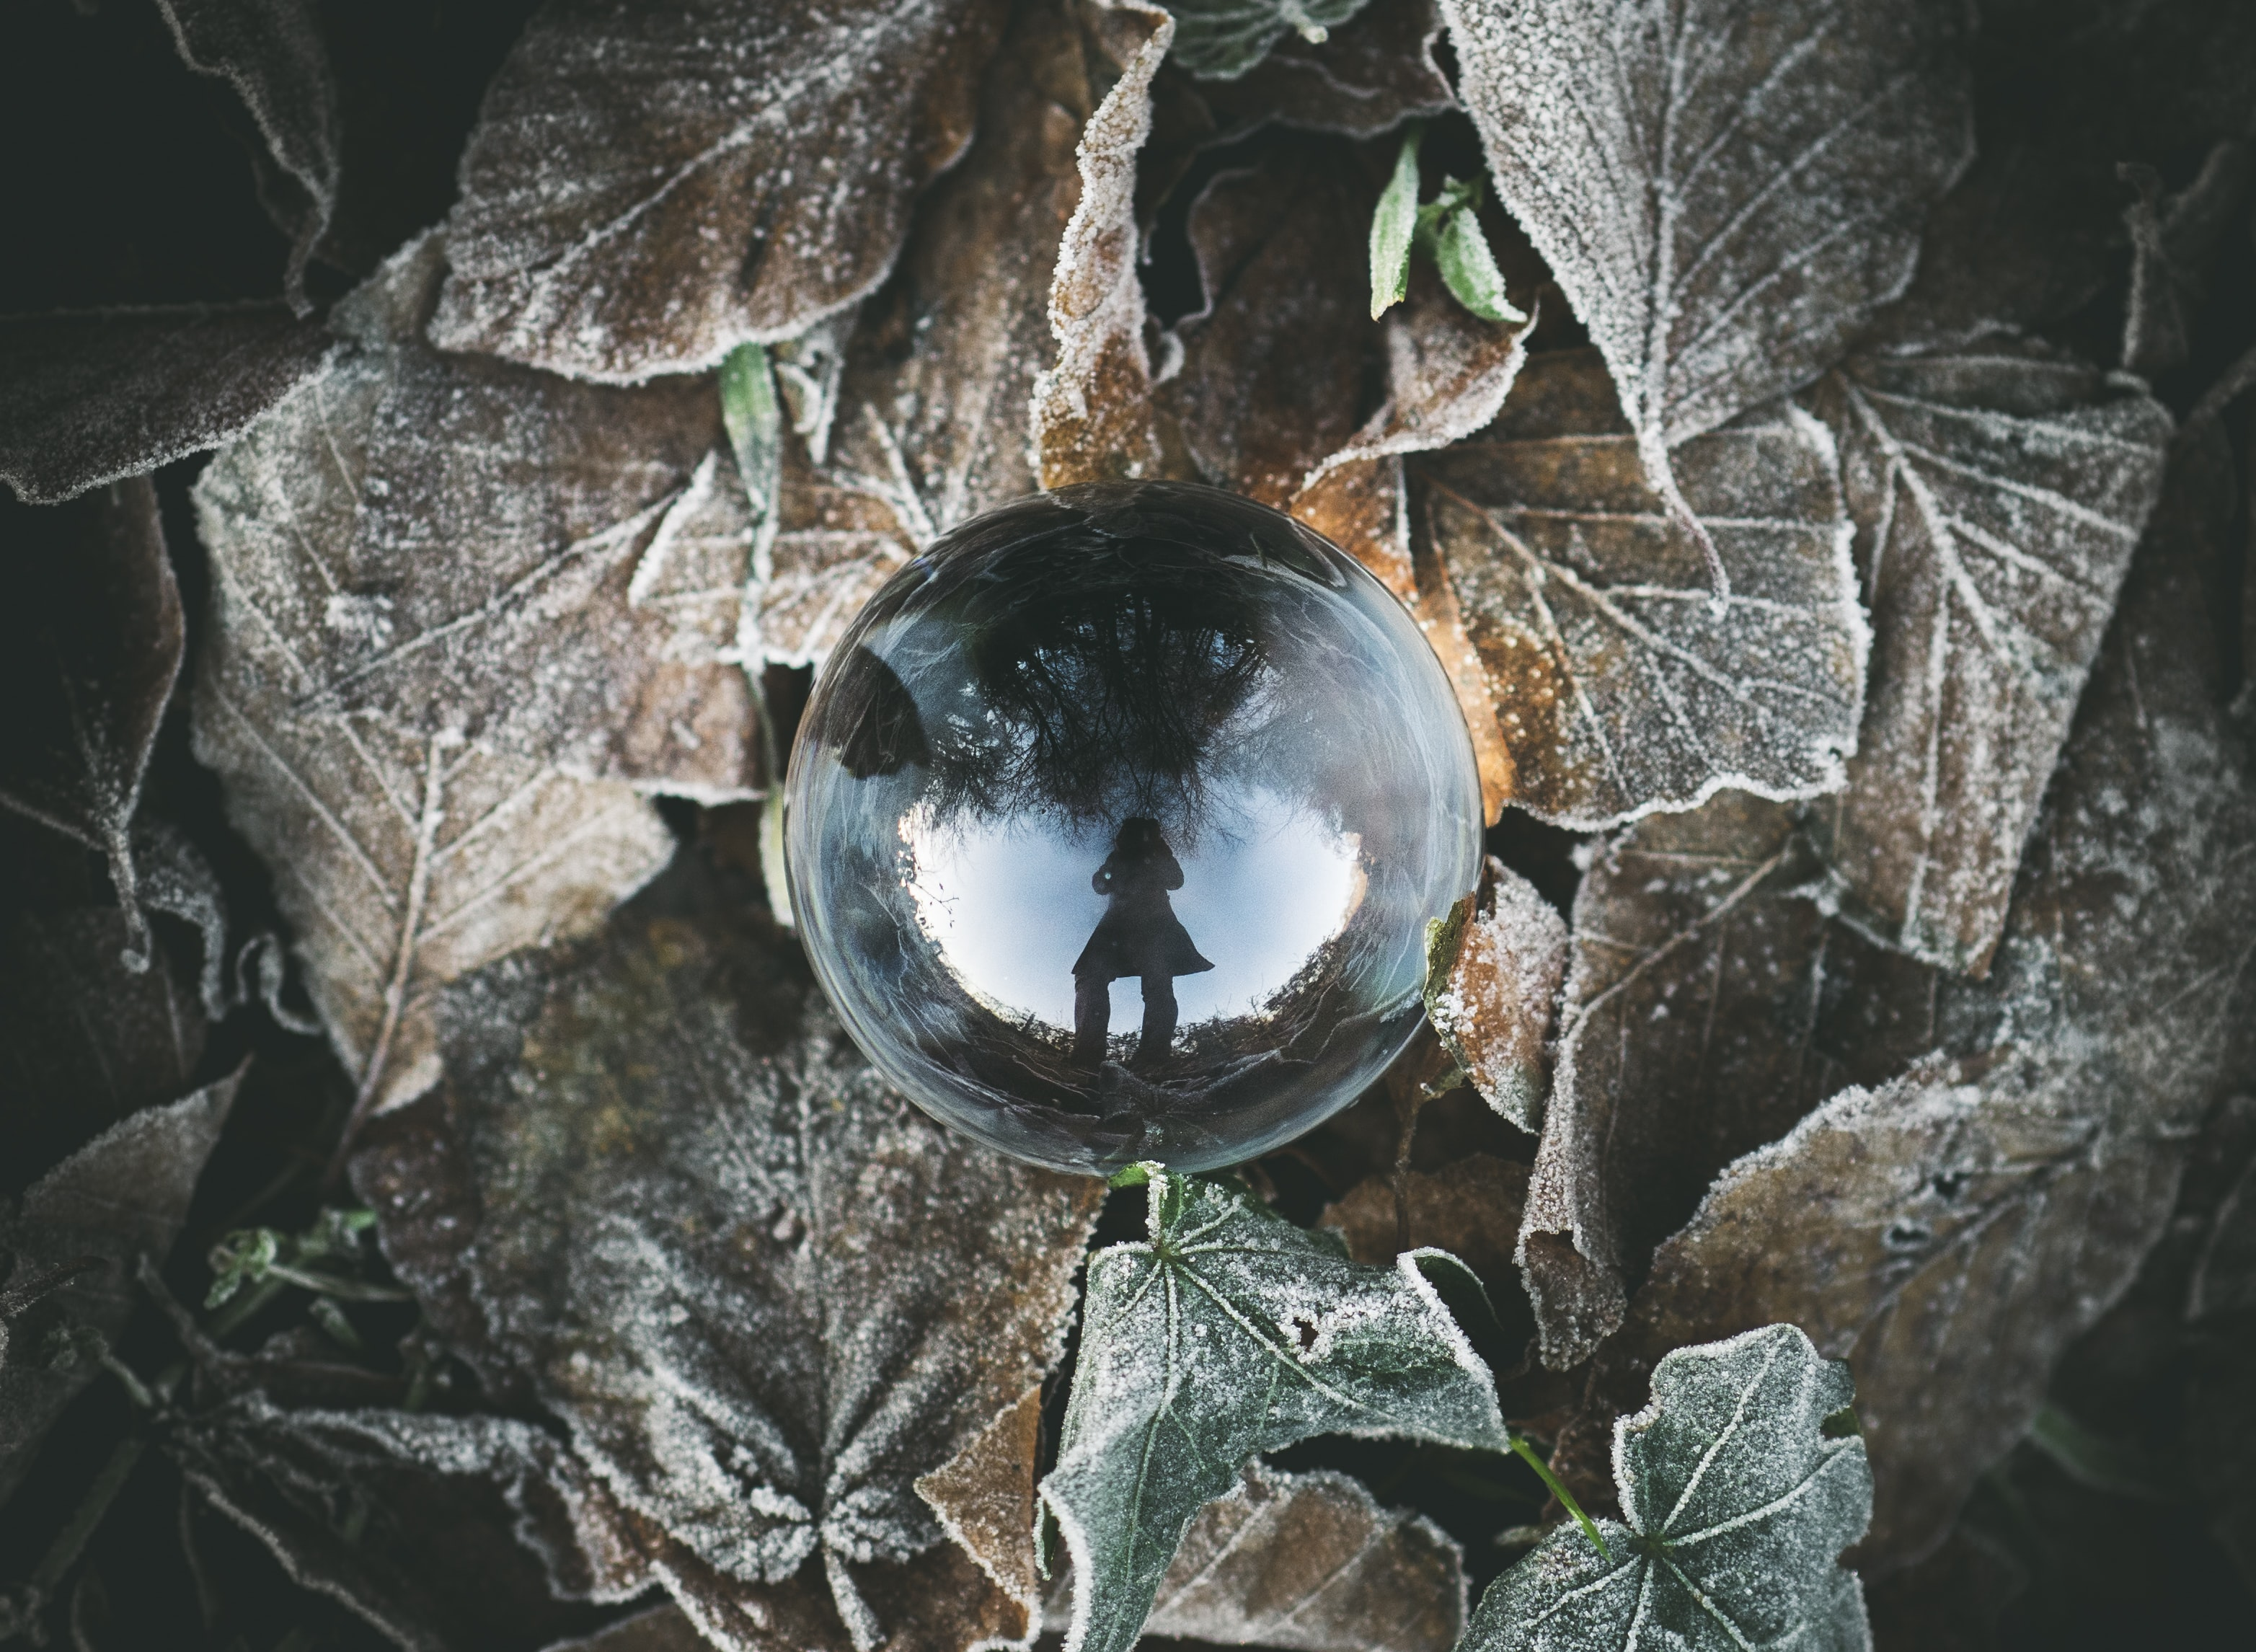 clear crystal ball on leaves